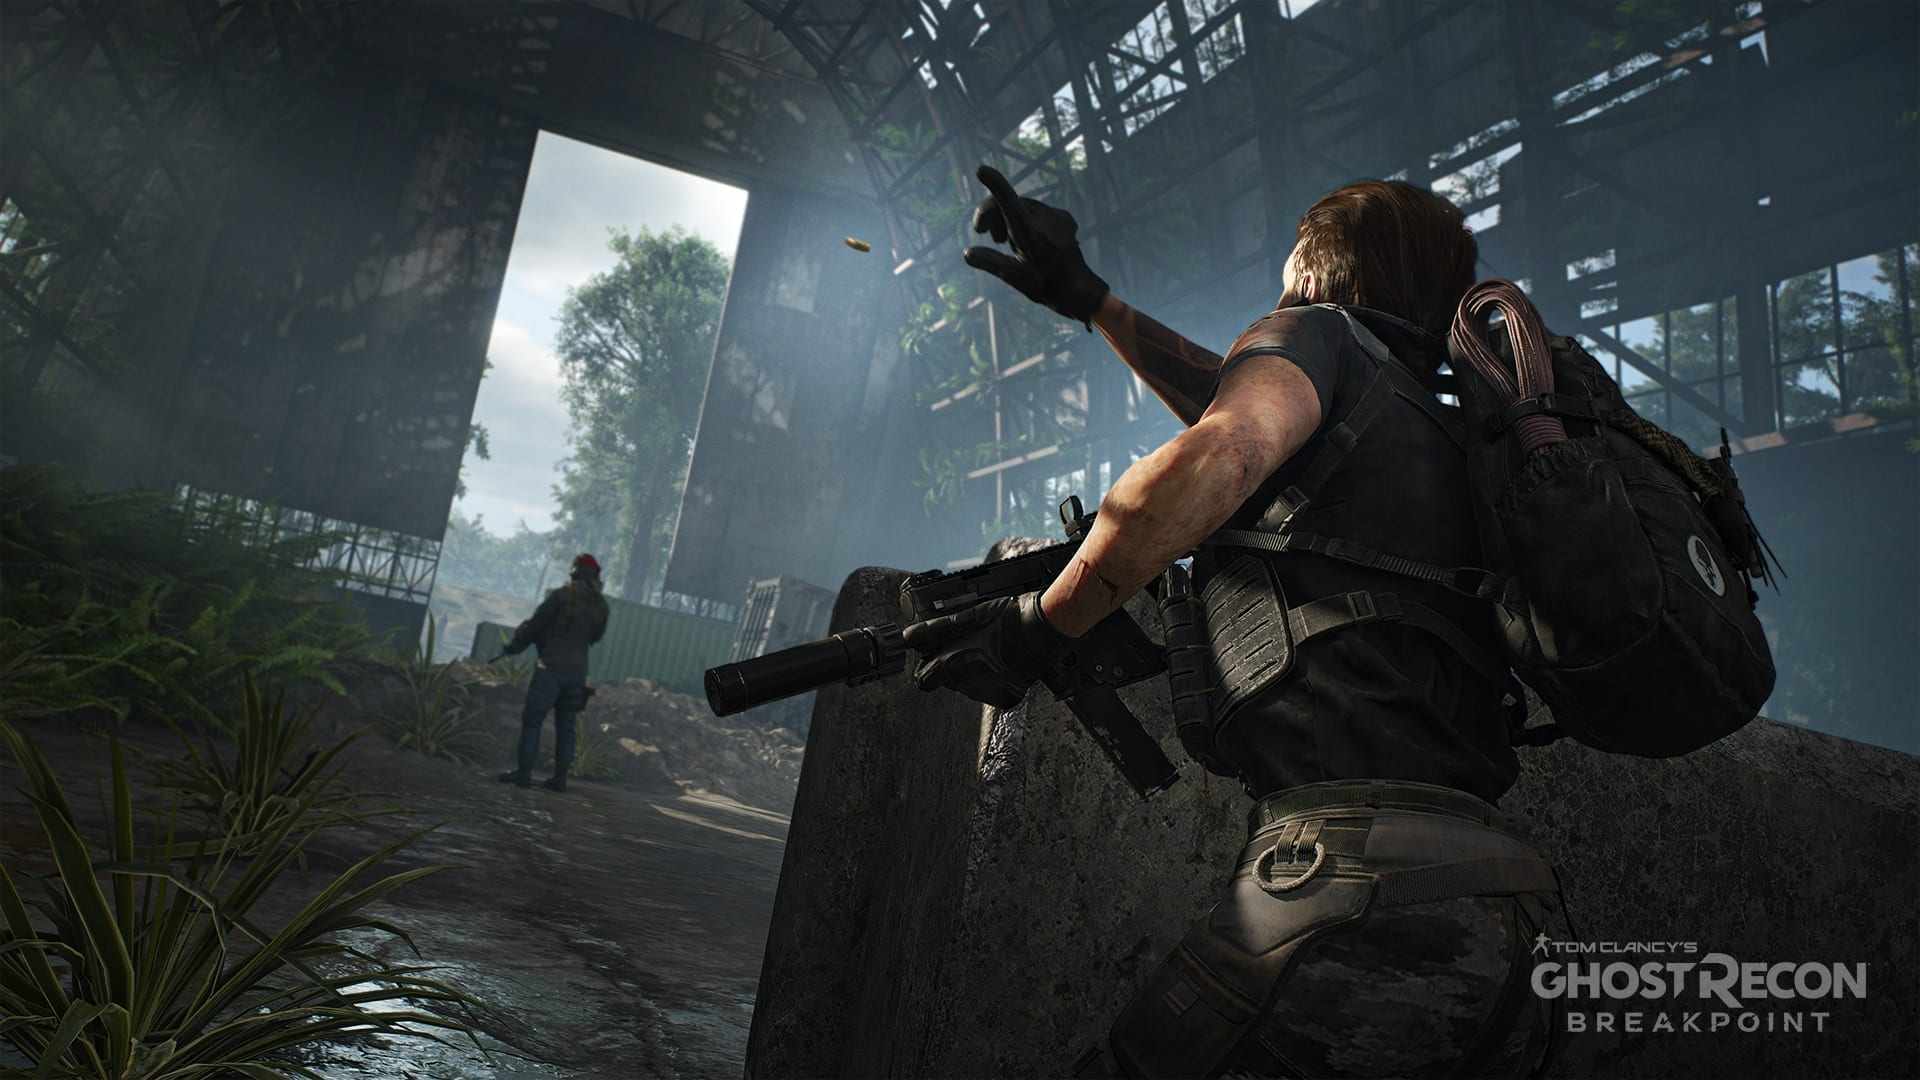 Ghost Recon Breakpoint Update 3.0.3